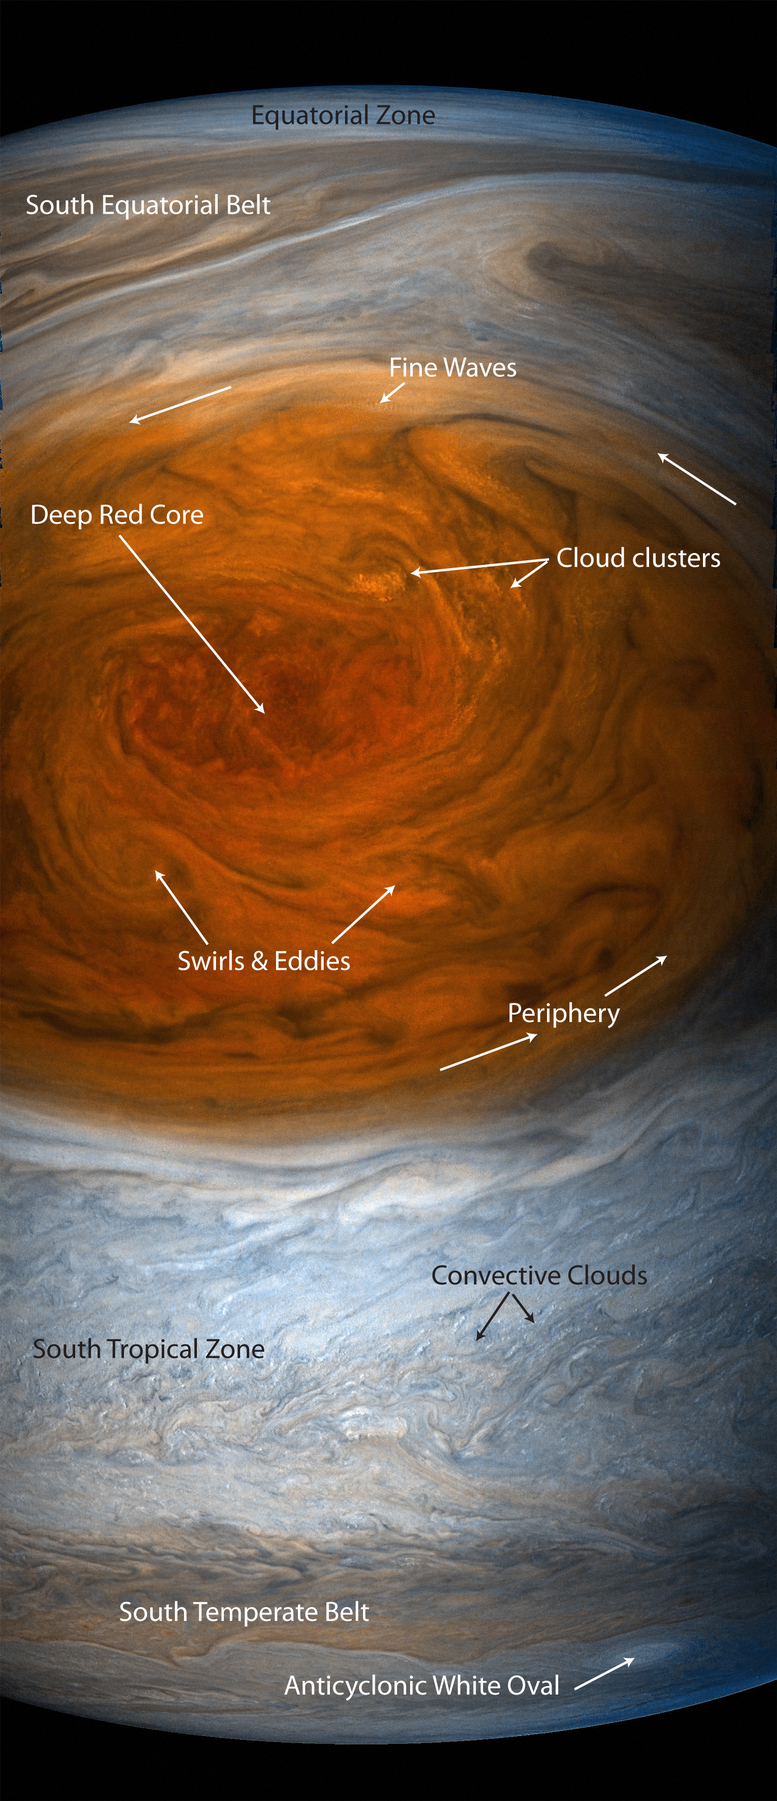 Juno's view of the Great Red Spot taken from 5,600 miles away, with the vast vortex almost stretching from horizon to horizon, annotations by L.N. Fletcher. - Image Credit: NASA / SwRI / MSSS / Gerald Eichstädt / Seán Doran